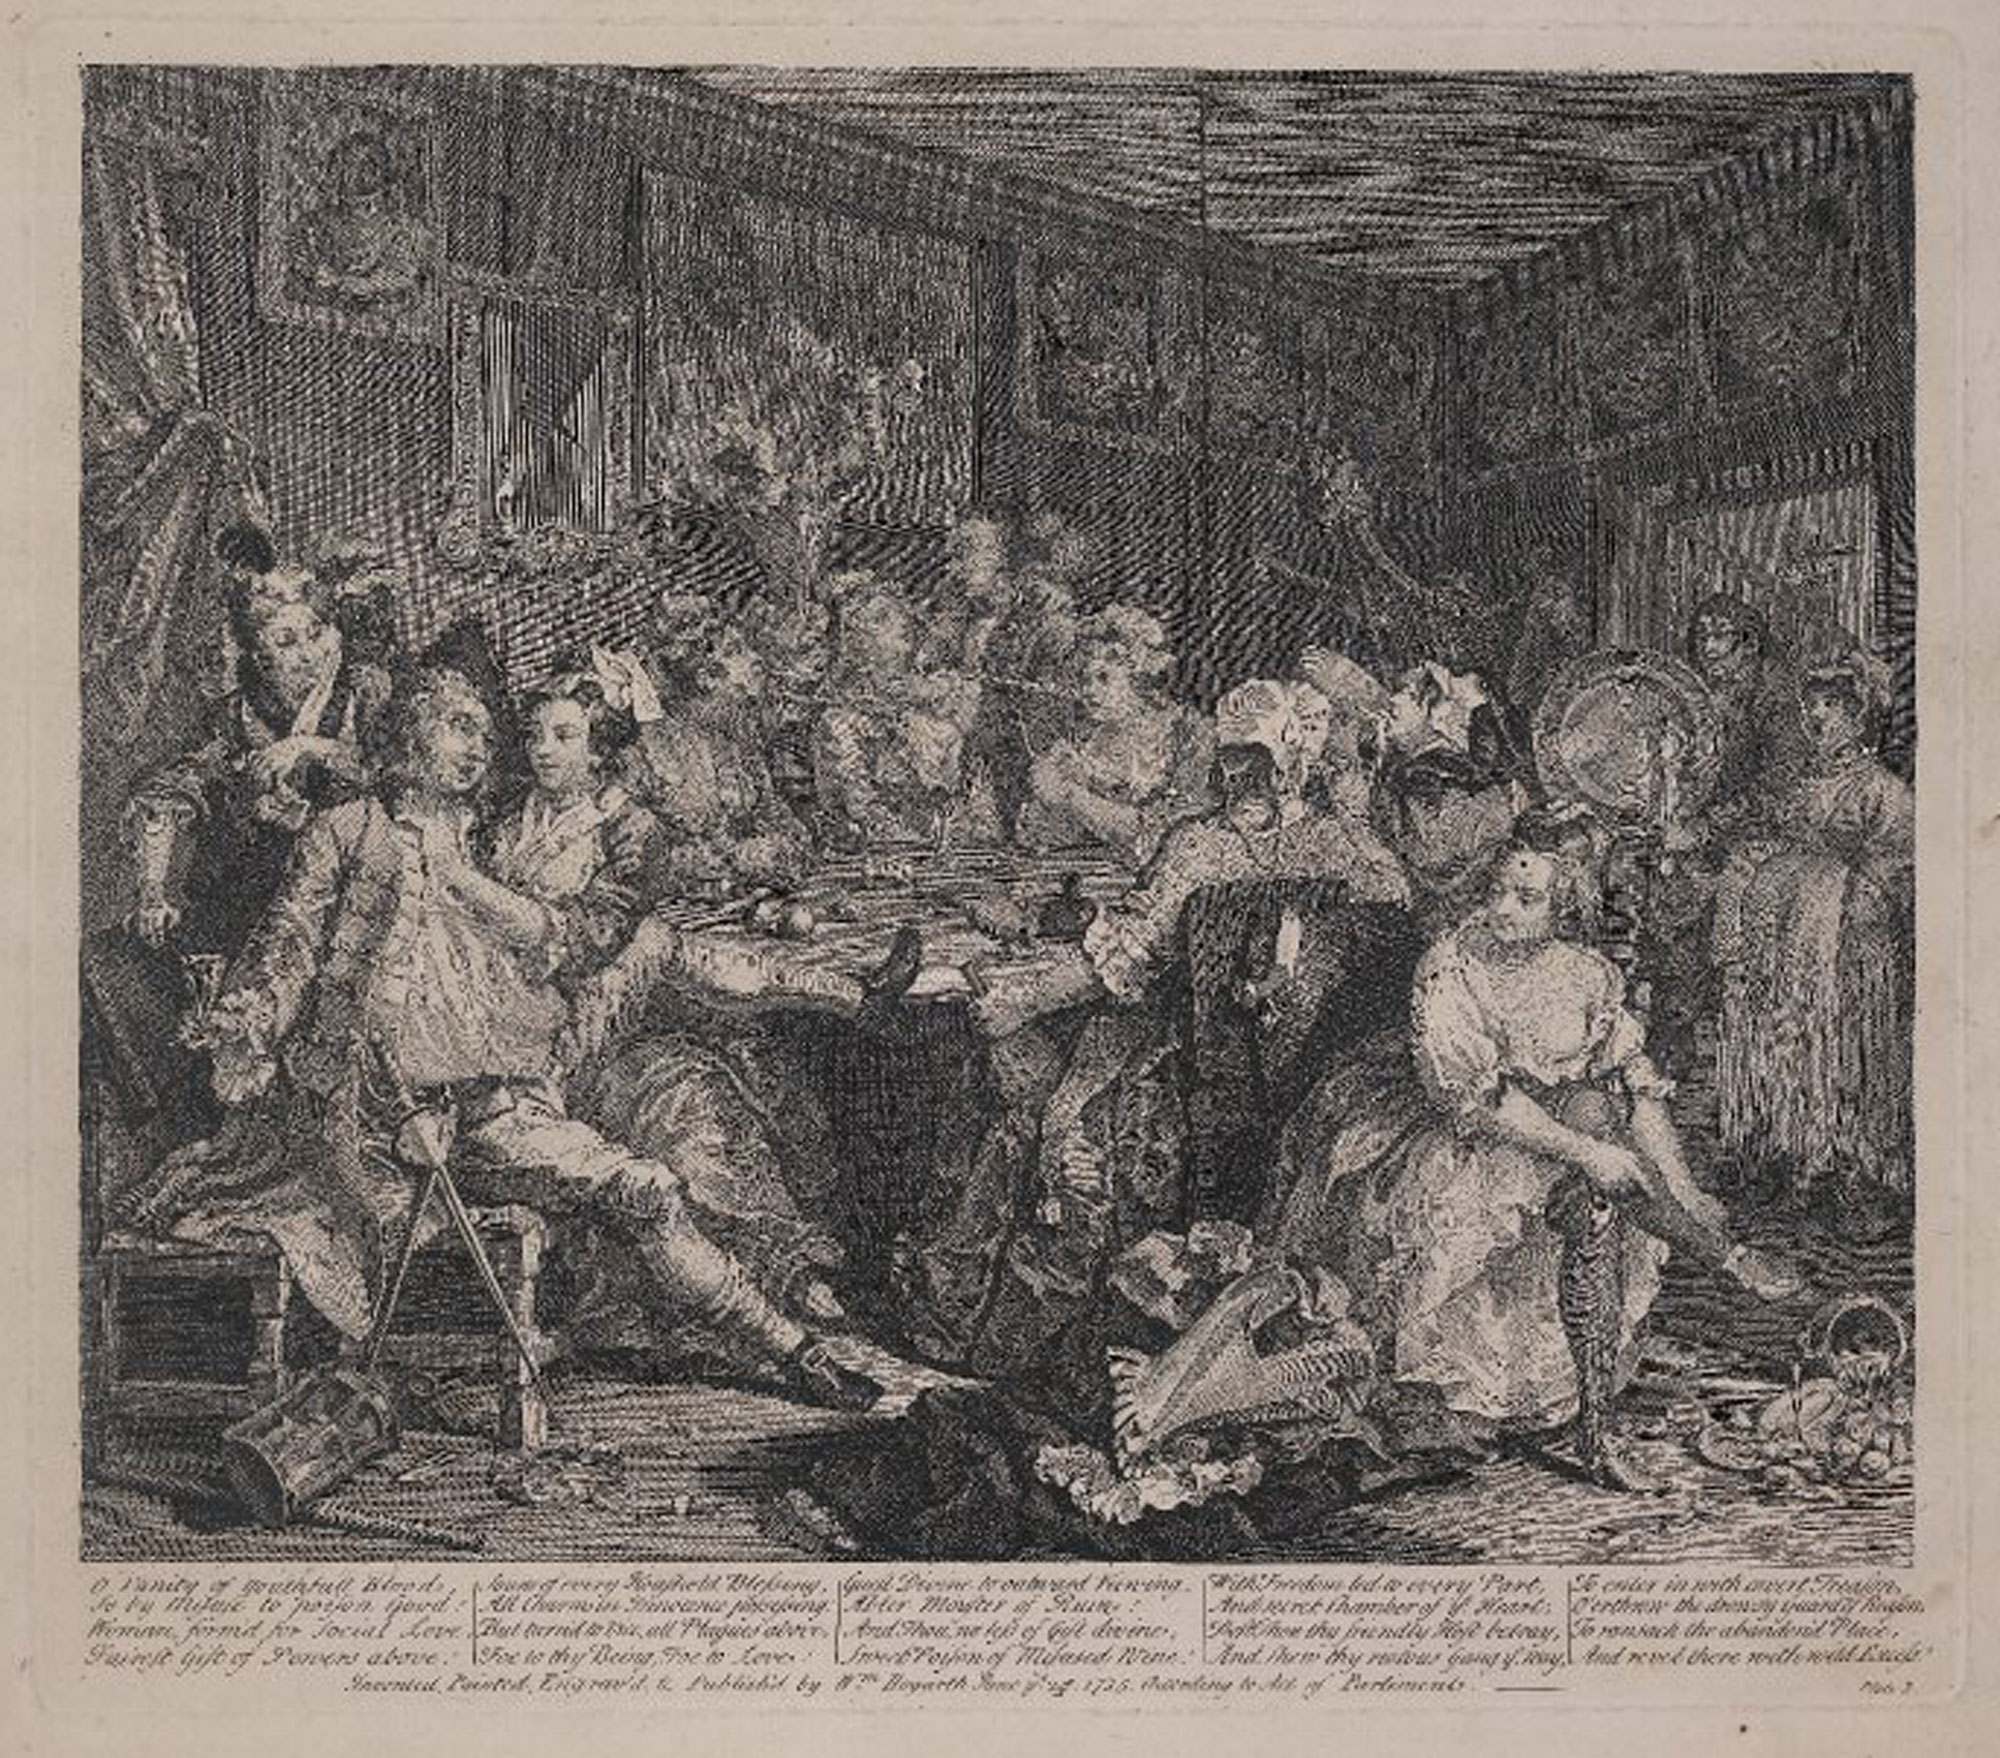 Scene of drunkenness and debauchery from Hogarth's Rake's Progress